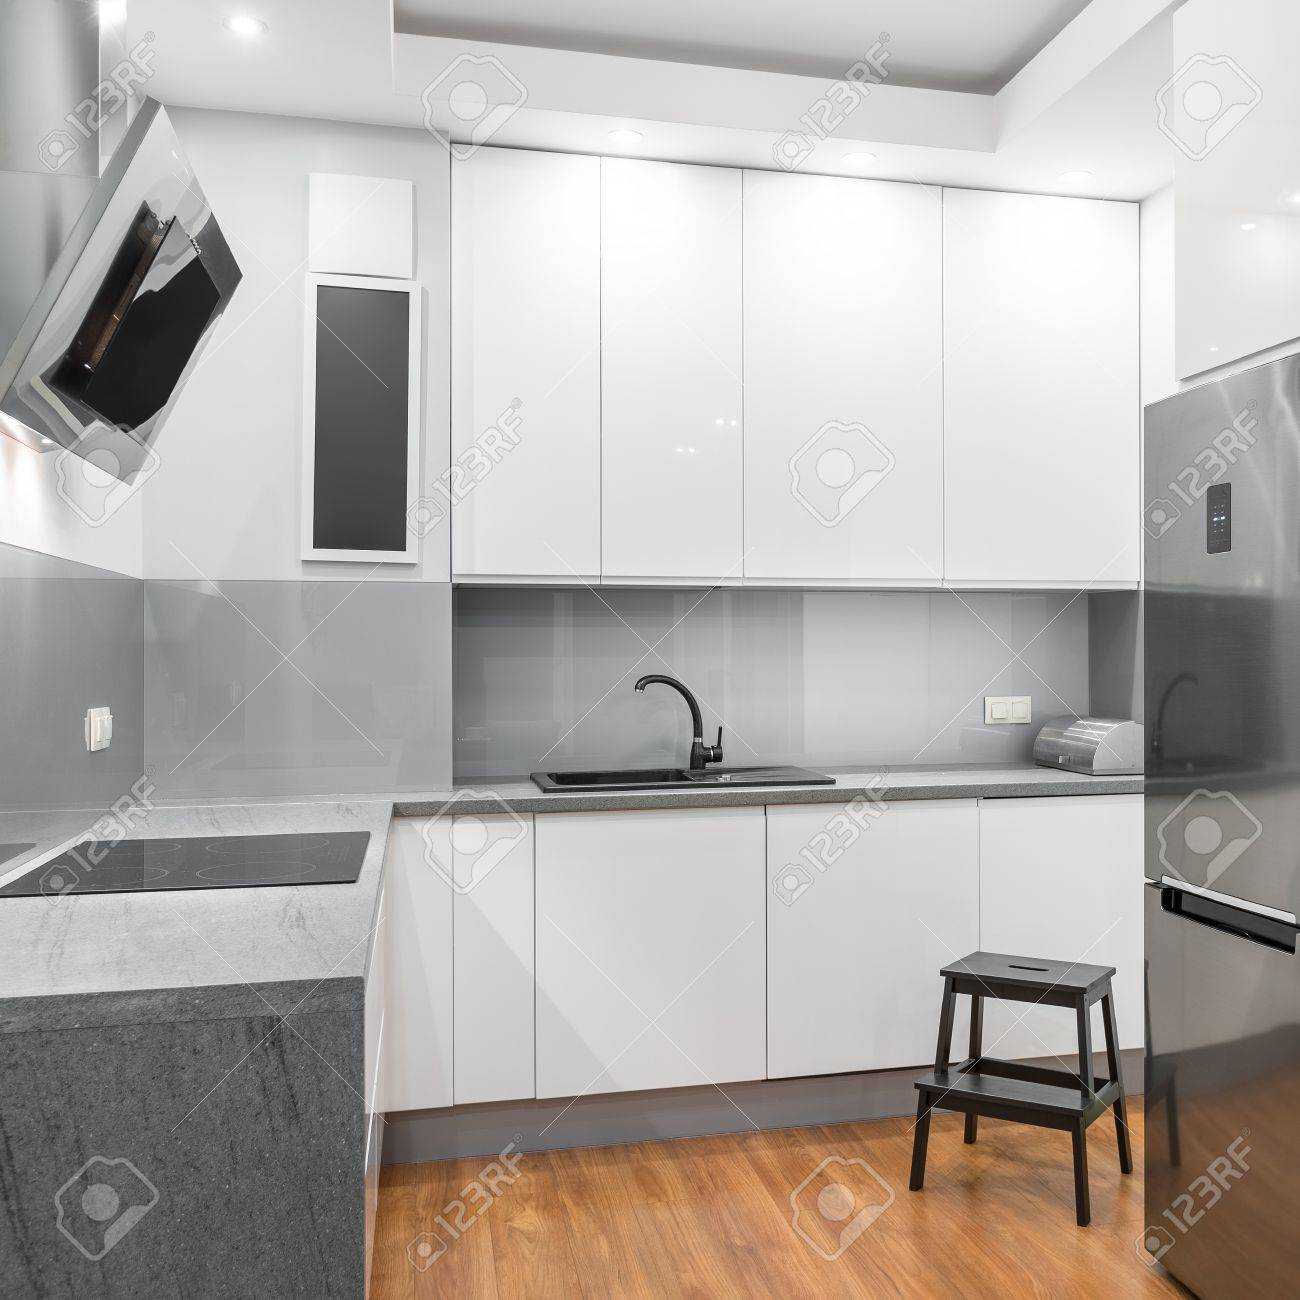 Functional white kitchen with wooden step stool, silver fridge..